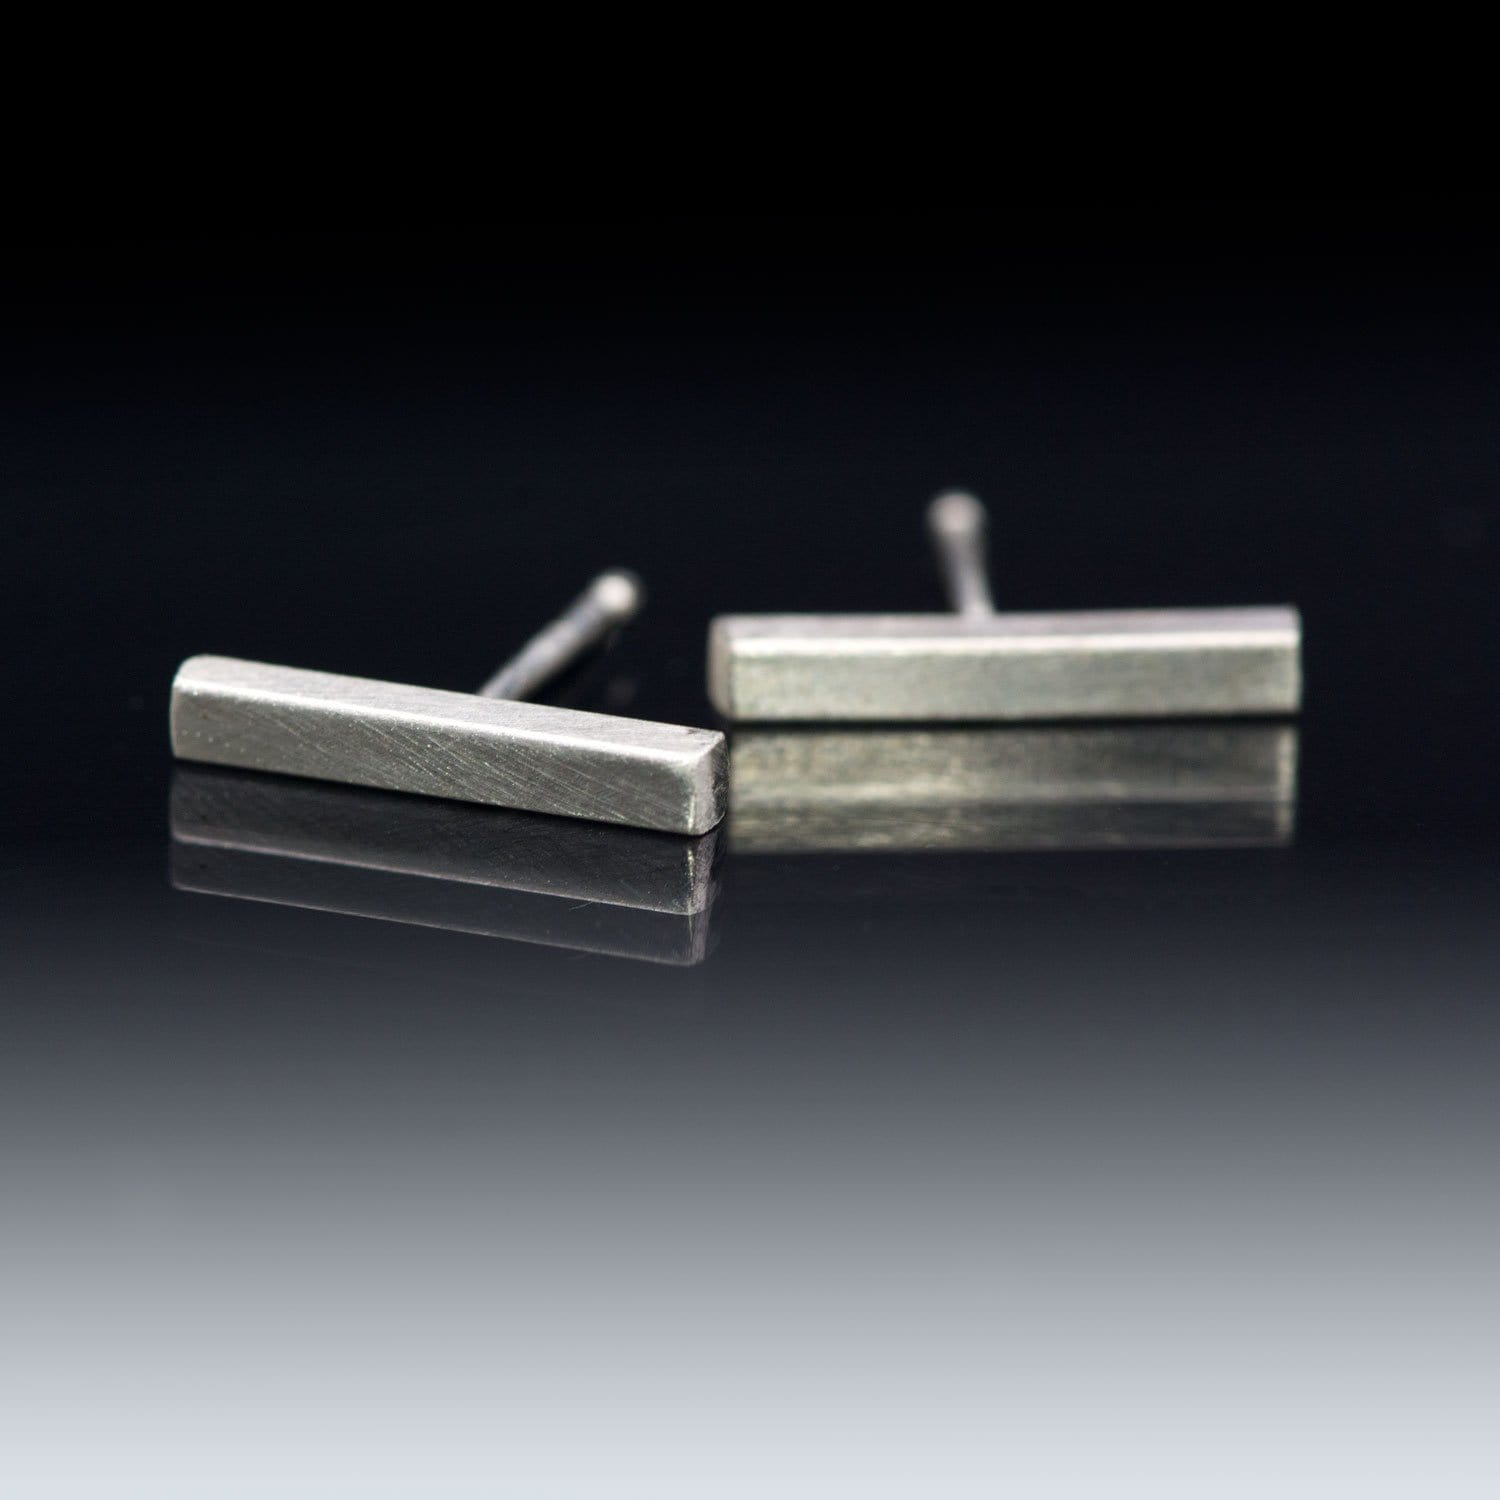 Simple Sterling Silver Bar Studs Earrings, Ready to Ship